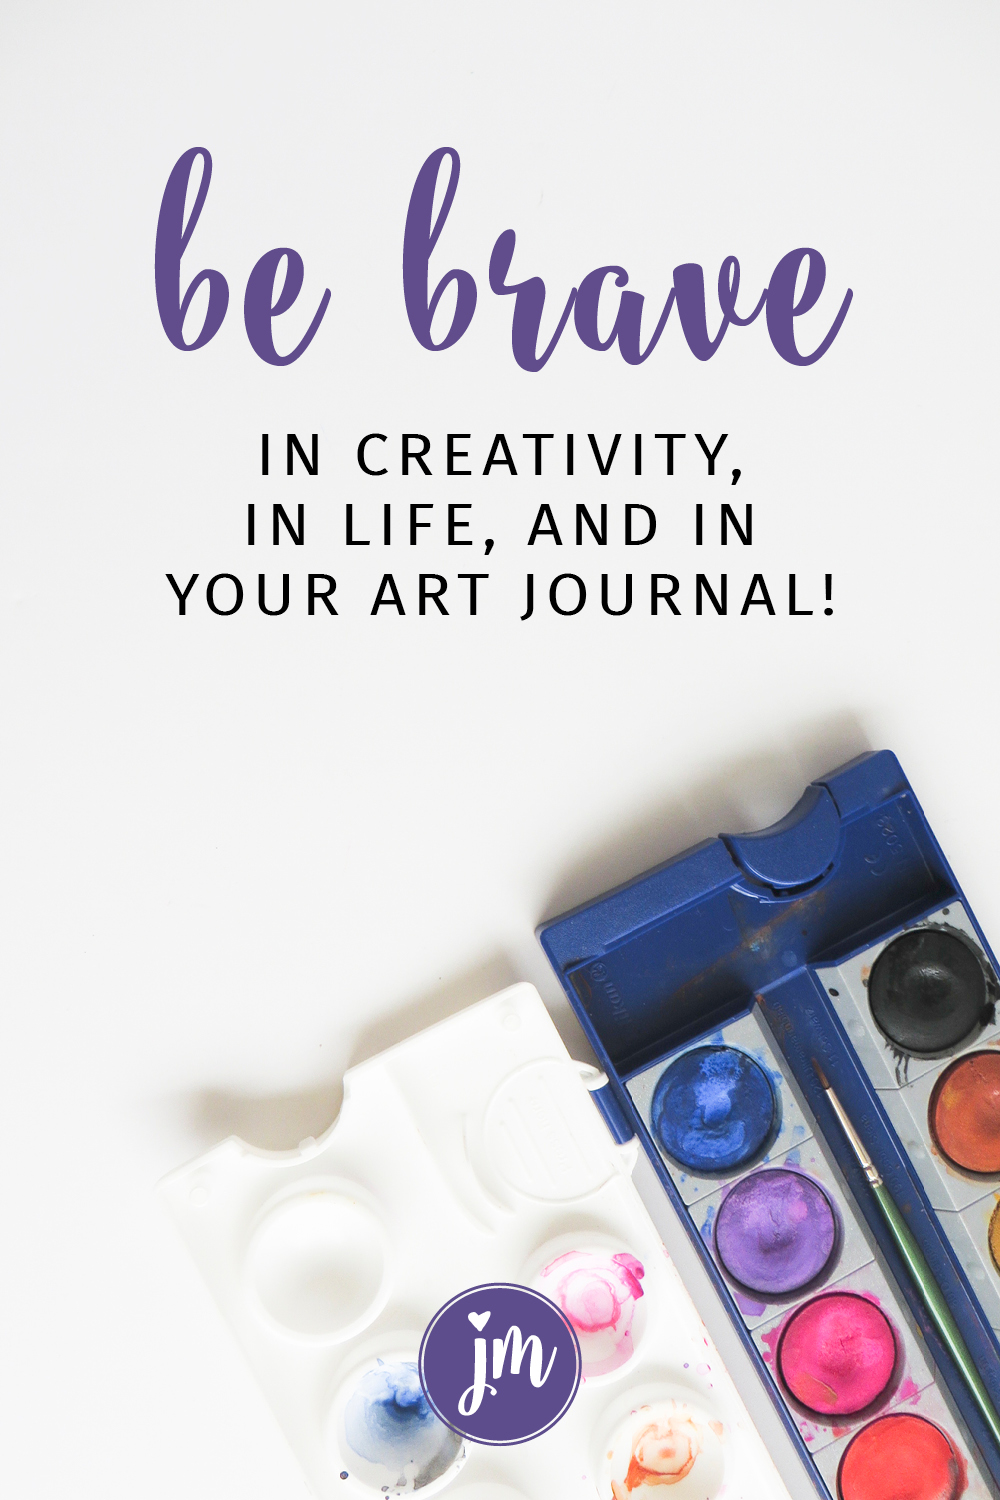 So good. It's hard to step out of my comfort zone when I'm creating, even if it's kind of silly to admit. I need to remember that all of those little steps matter. And they change how I see my life in general too! #artjournaling #bravegirl